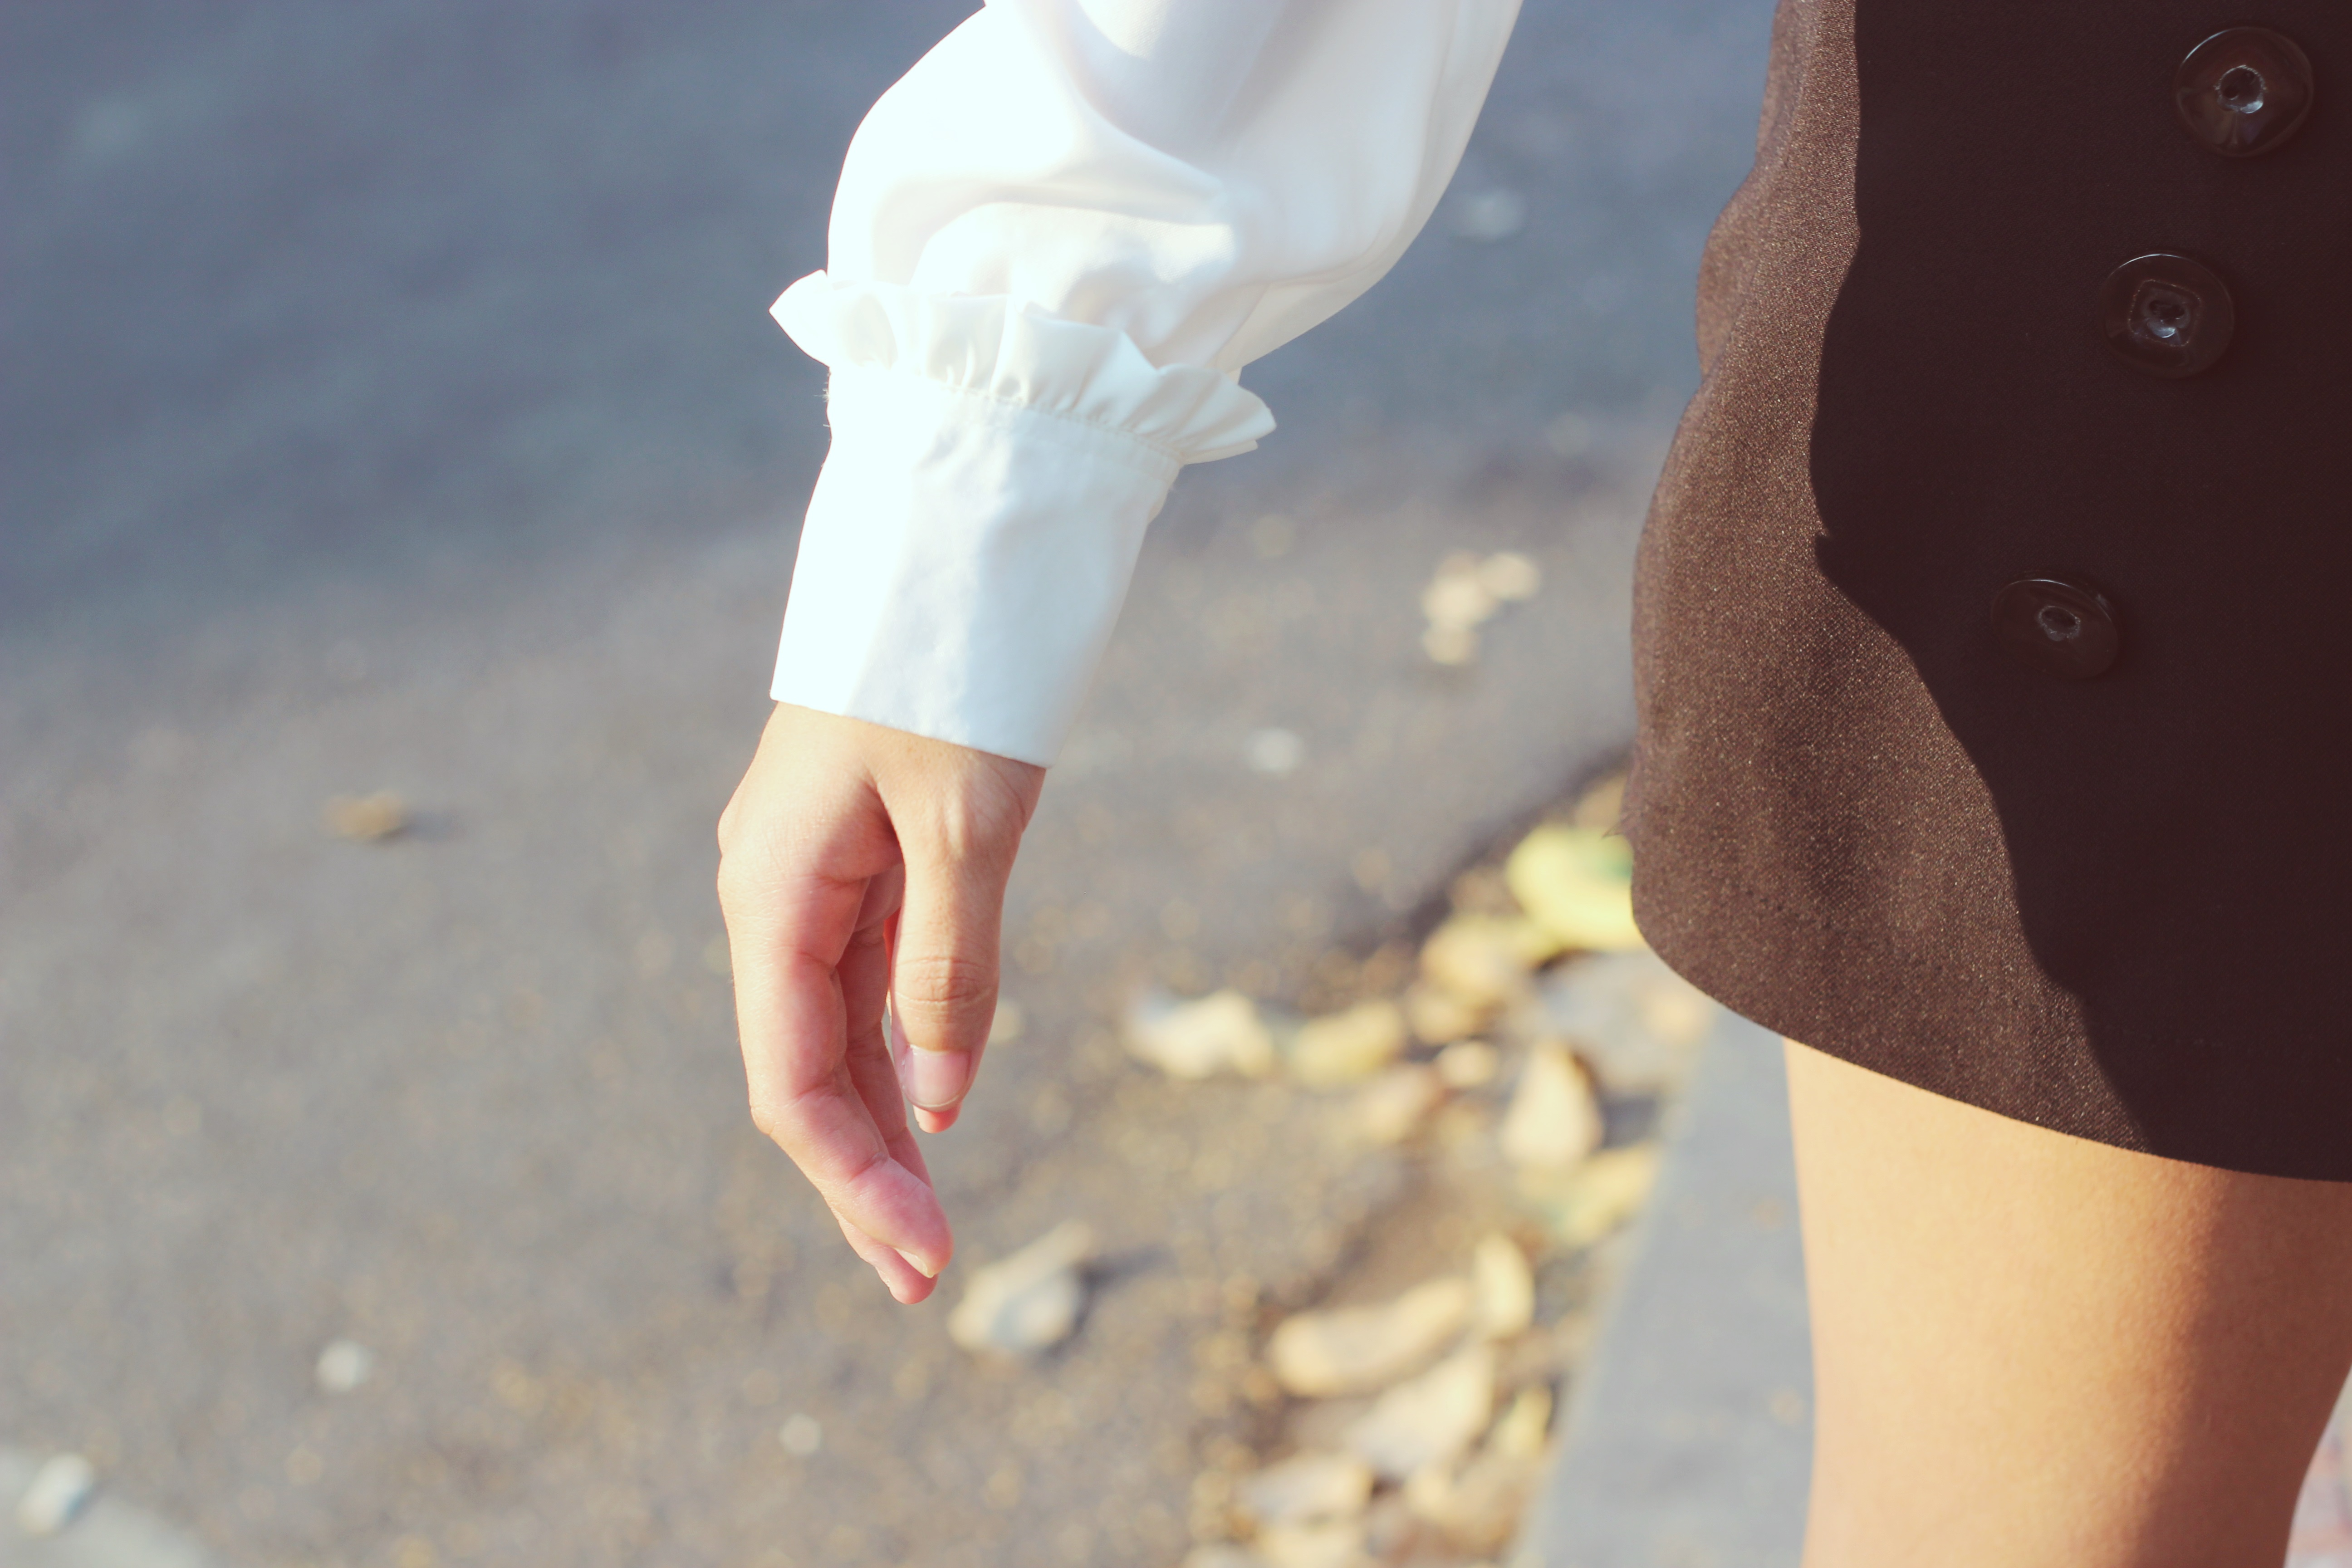 Person Wearing White Long-sleeved Shirt